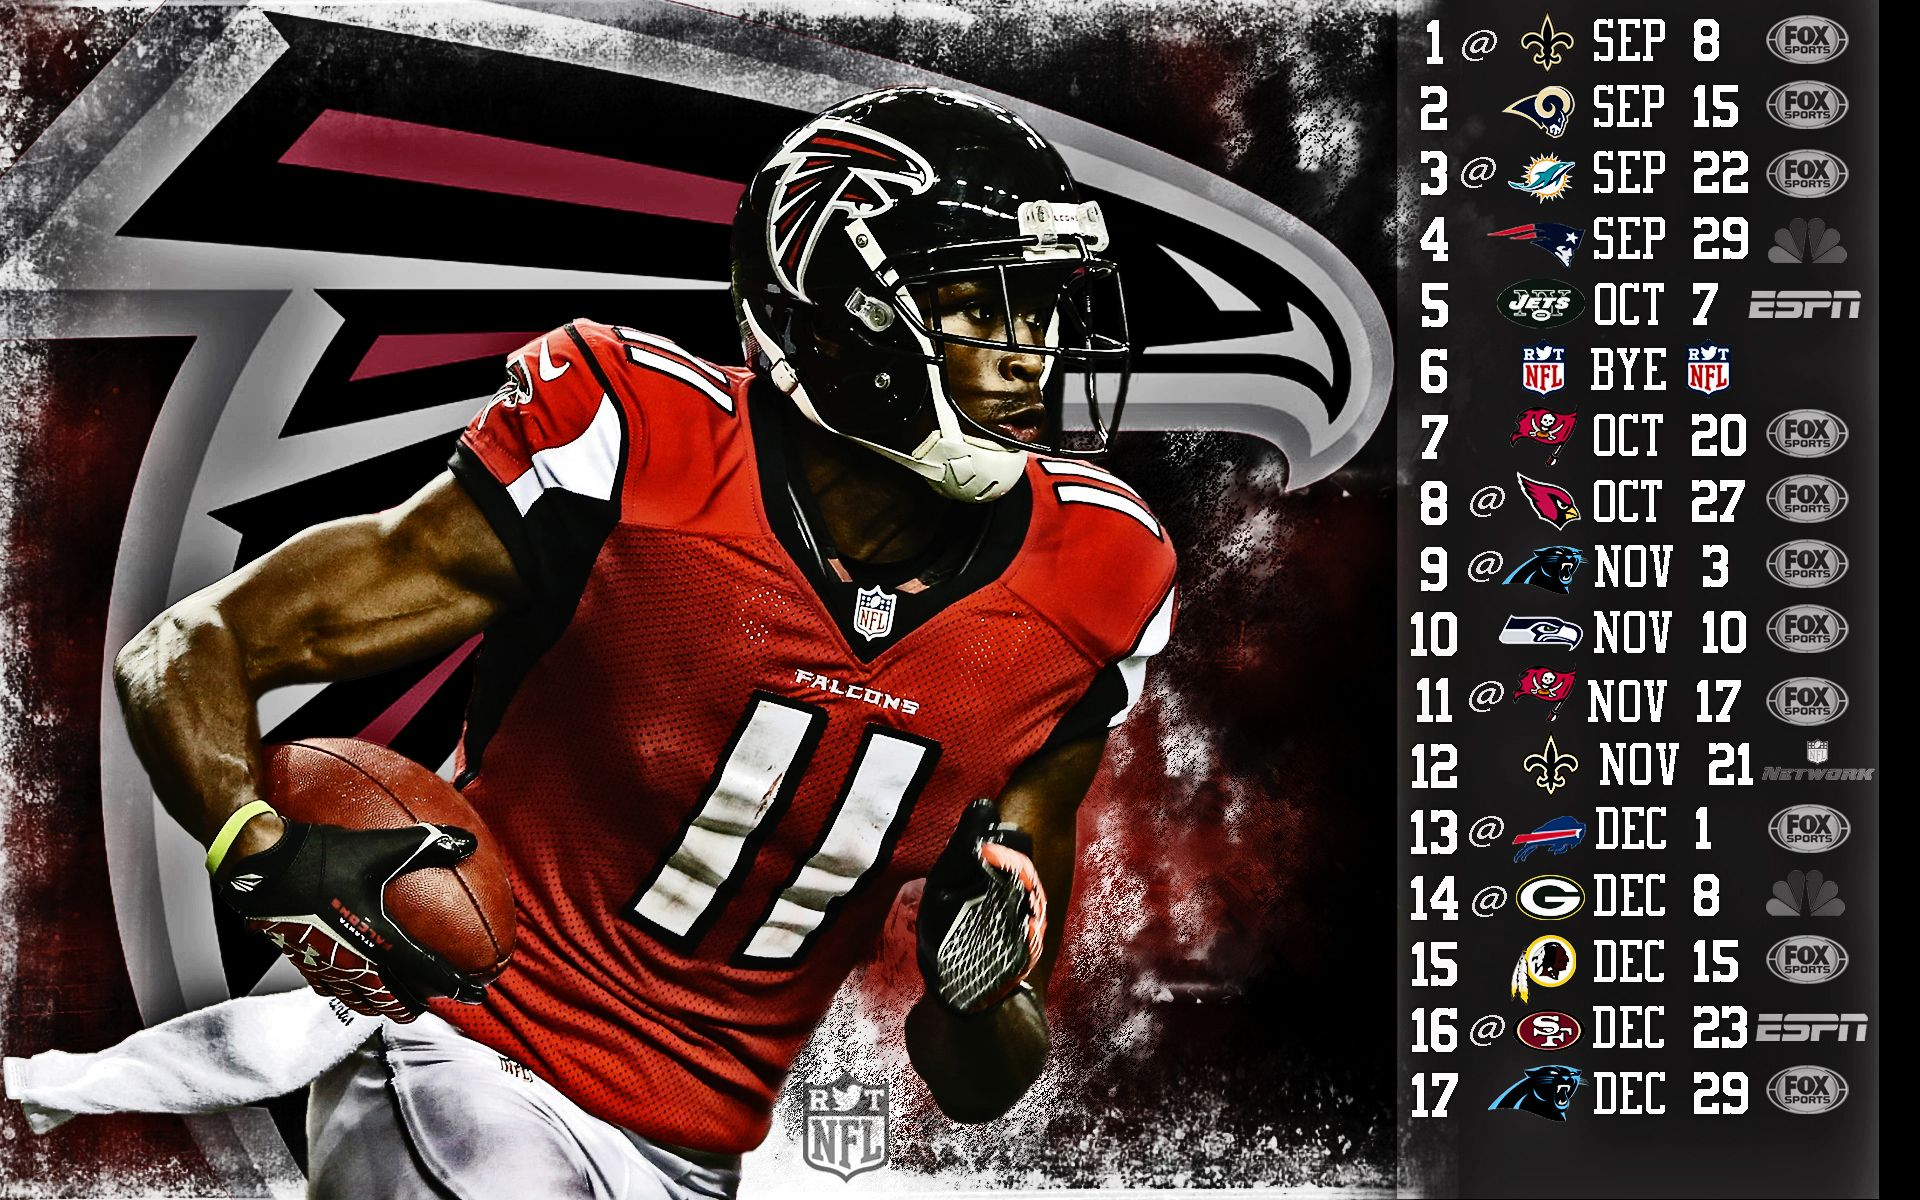 Atlanta Falcons Full Season Wallpaper Falcons Nfl High Definition Wallpapaer Atlanta Falcons Wallpaper Atlanta Falcons Falcons Football